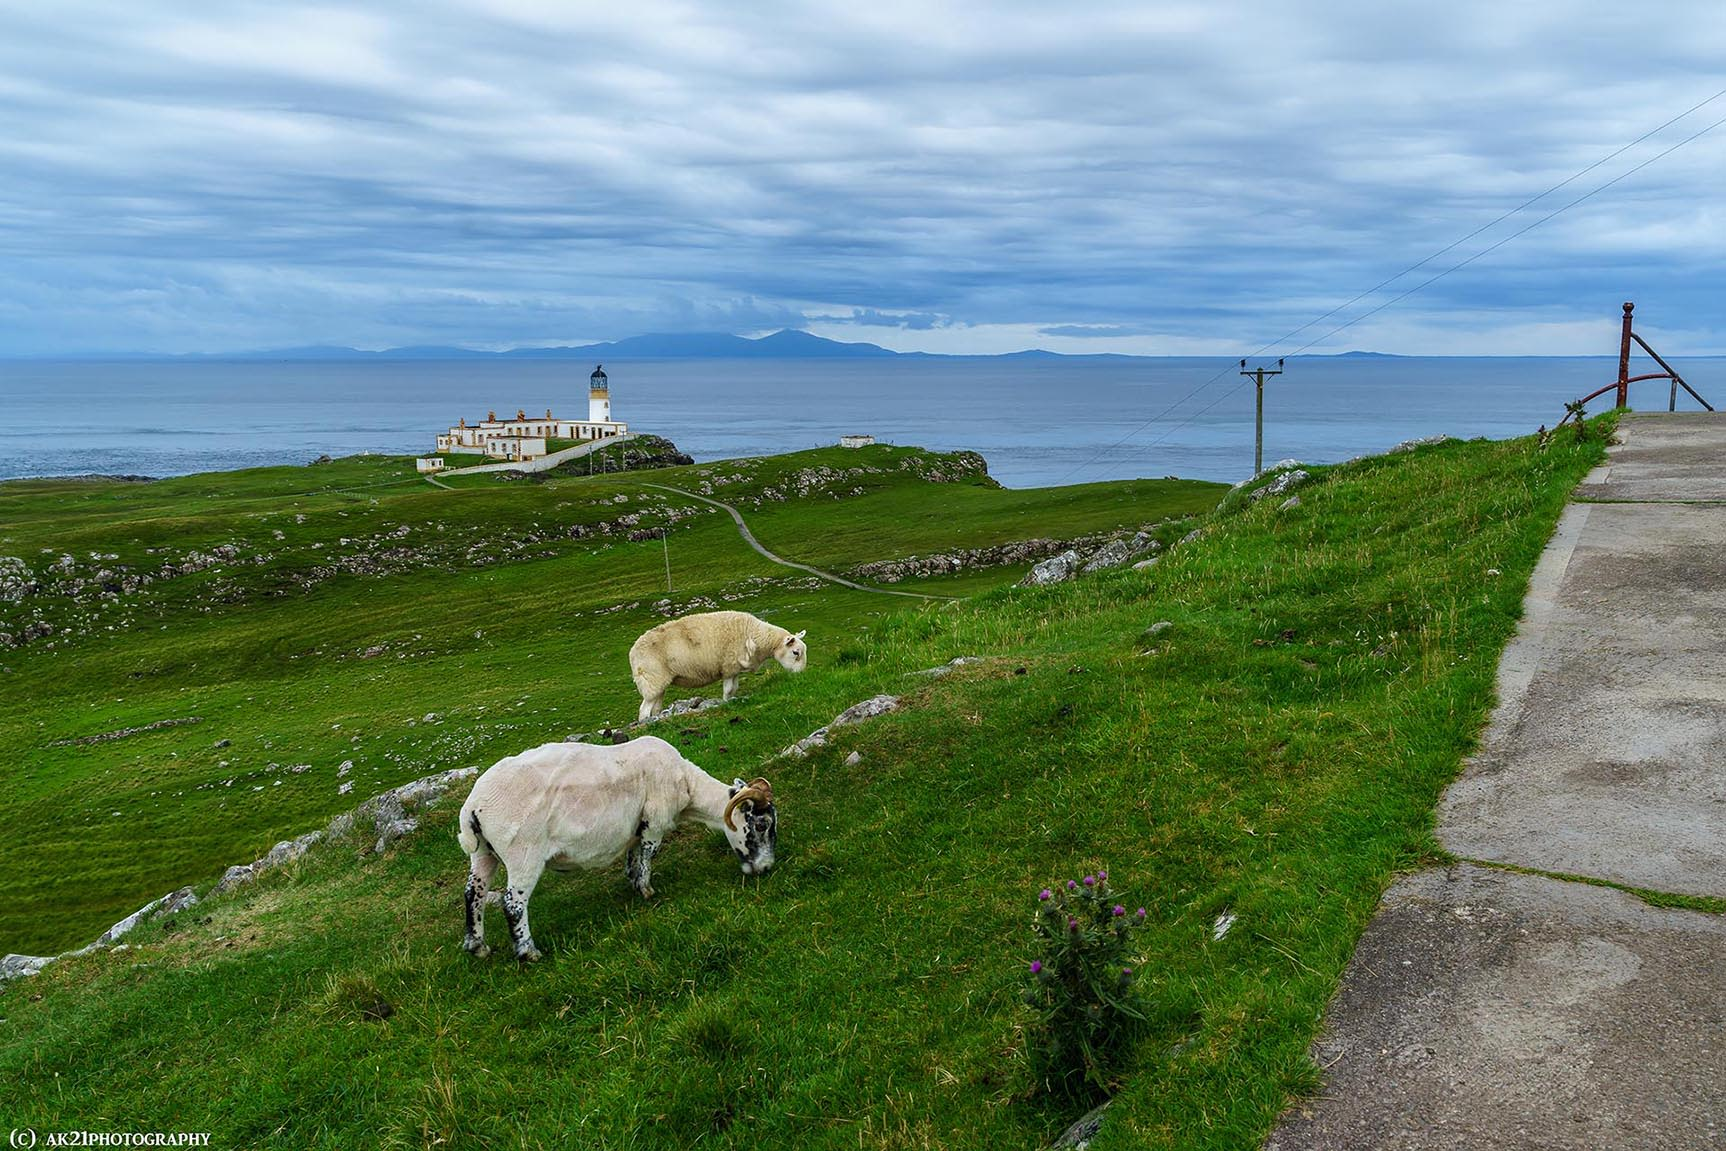 AVOIDING OBSTACLES IN SCOTLAND